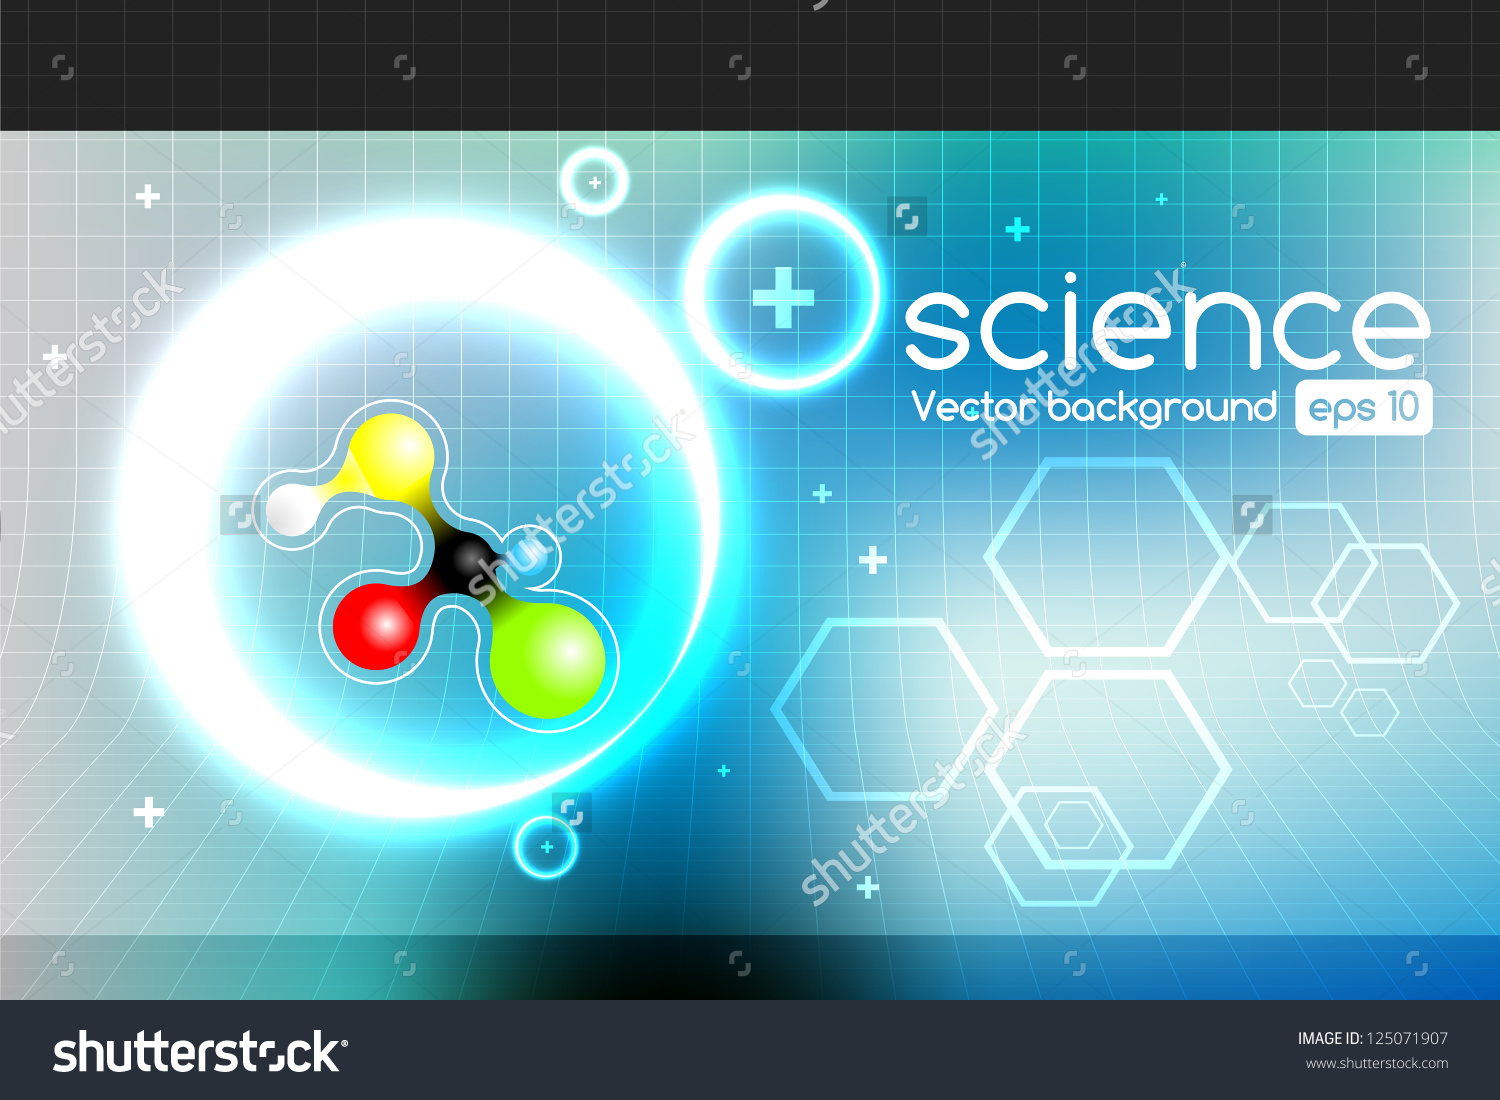 3d Photo Live Wallpaper Apk Download Science And Technology Wallpaper Gallery